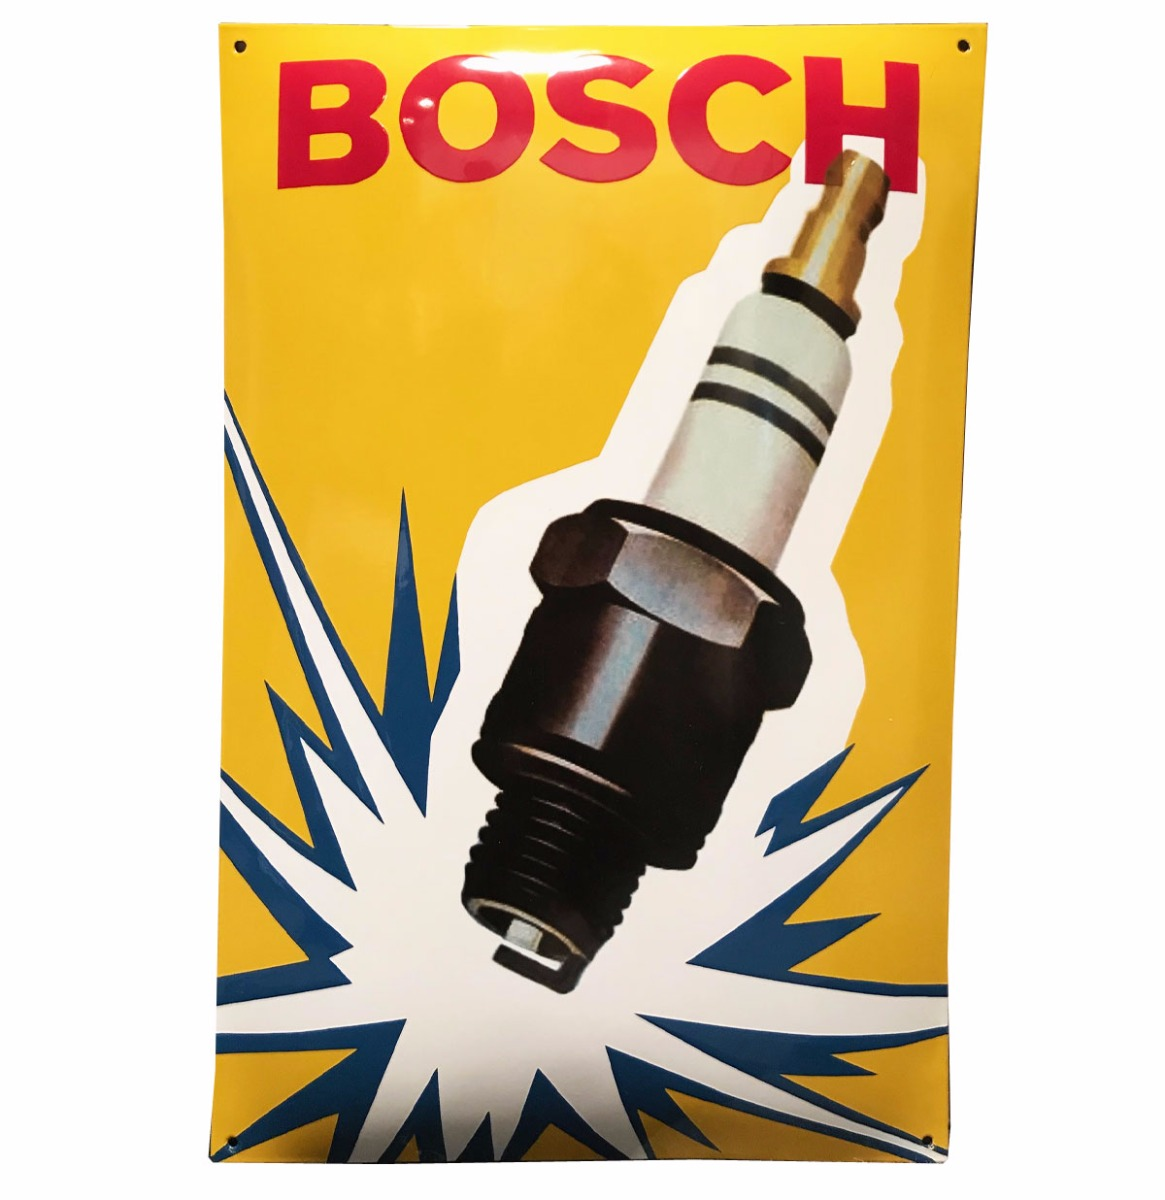 Bosch Spark Plug Bougies Emaille Bord 60 x 40 cm